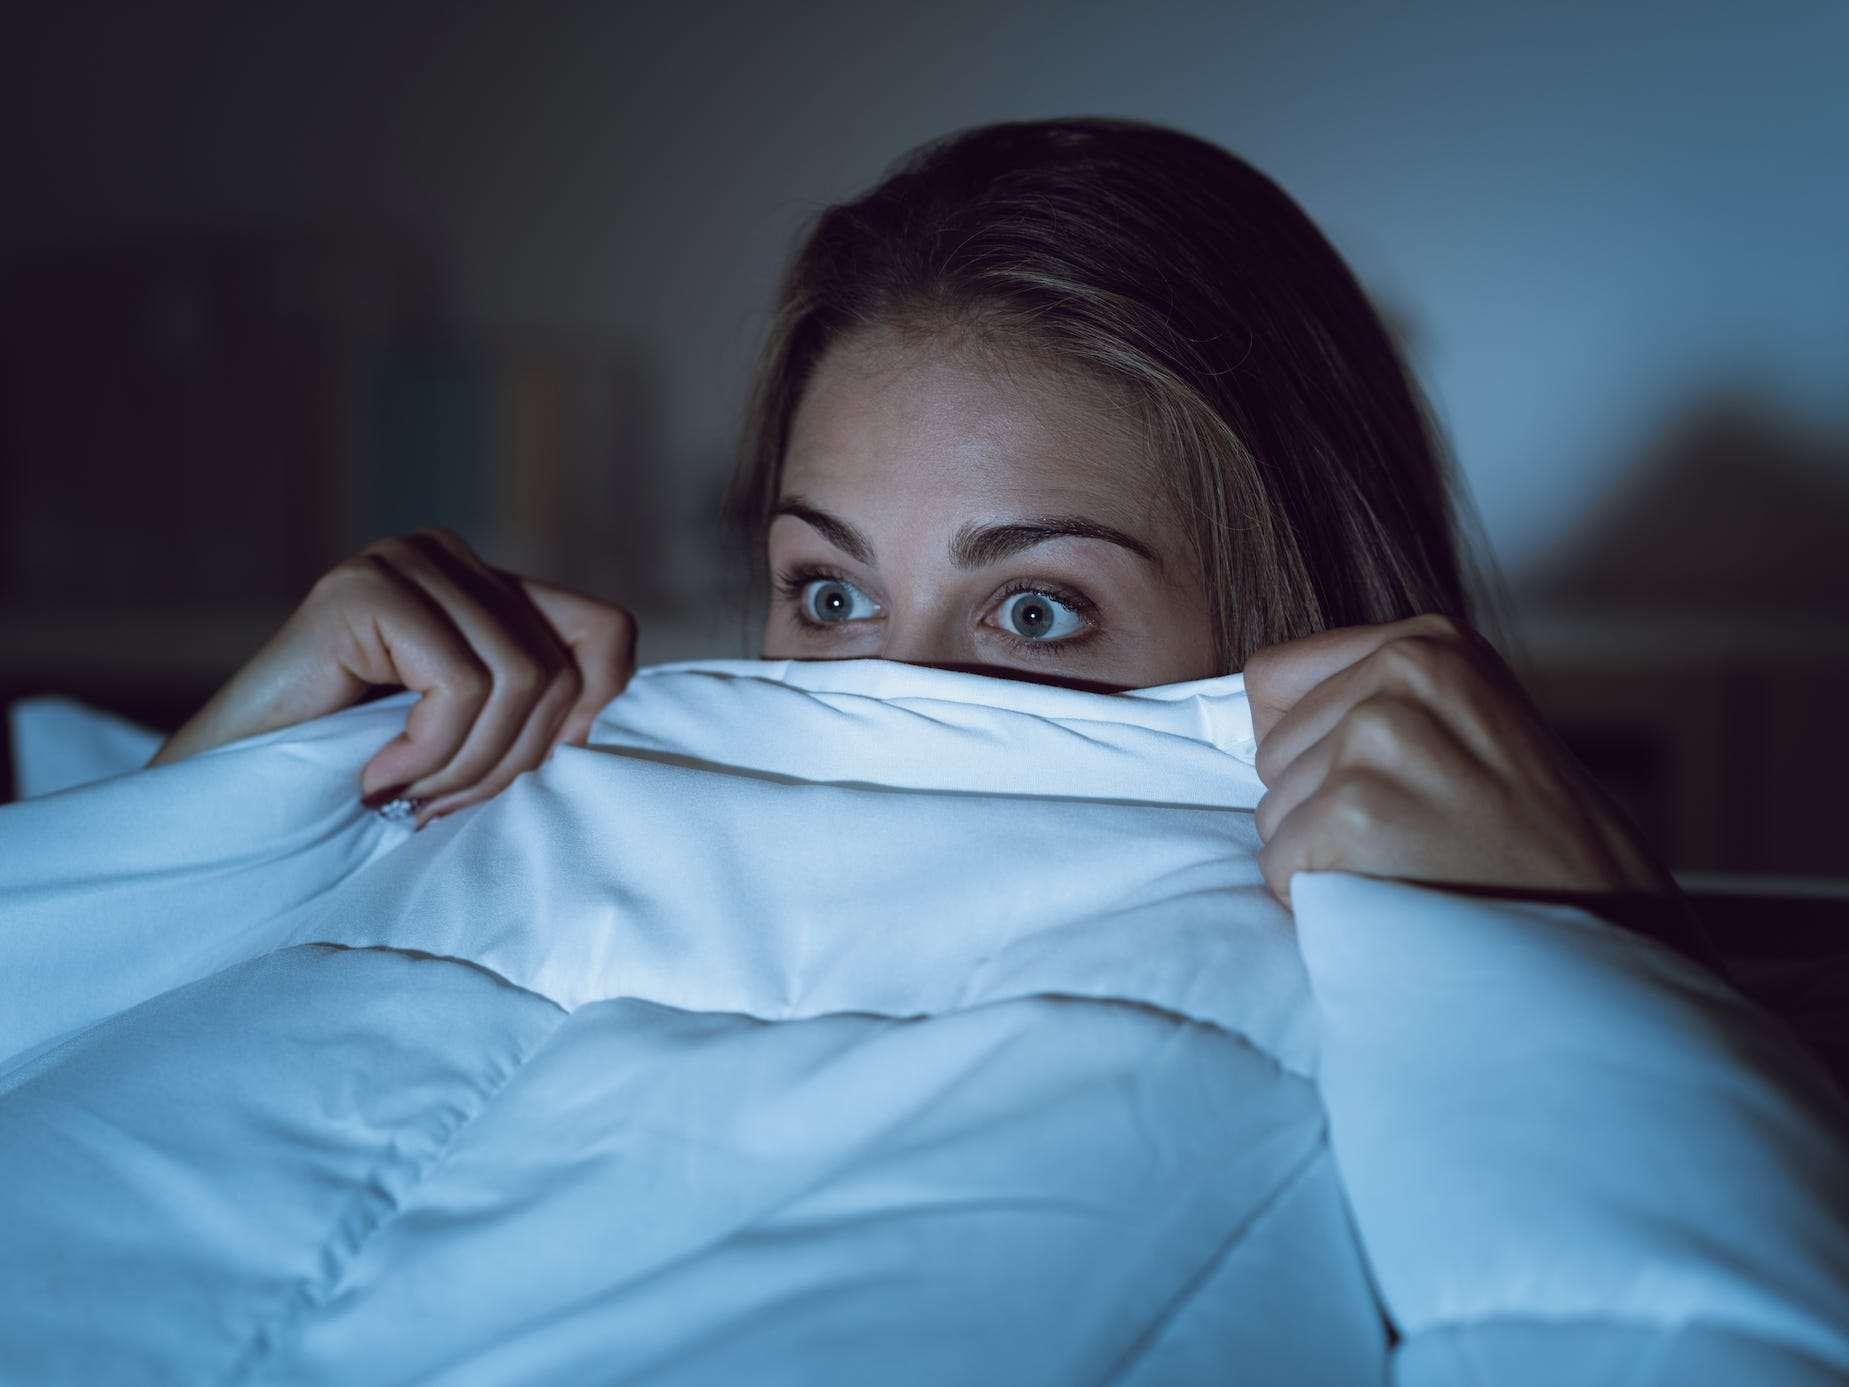 You Can Make $1,000 Watching Horror Movies